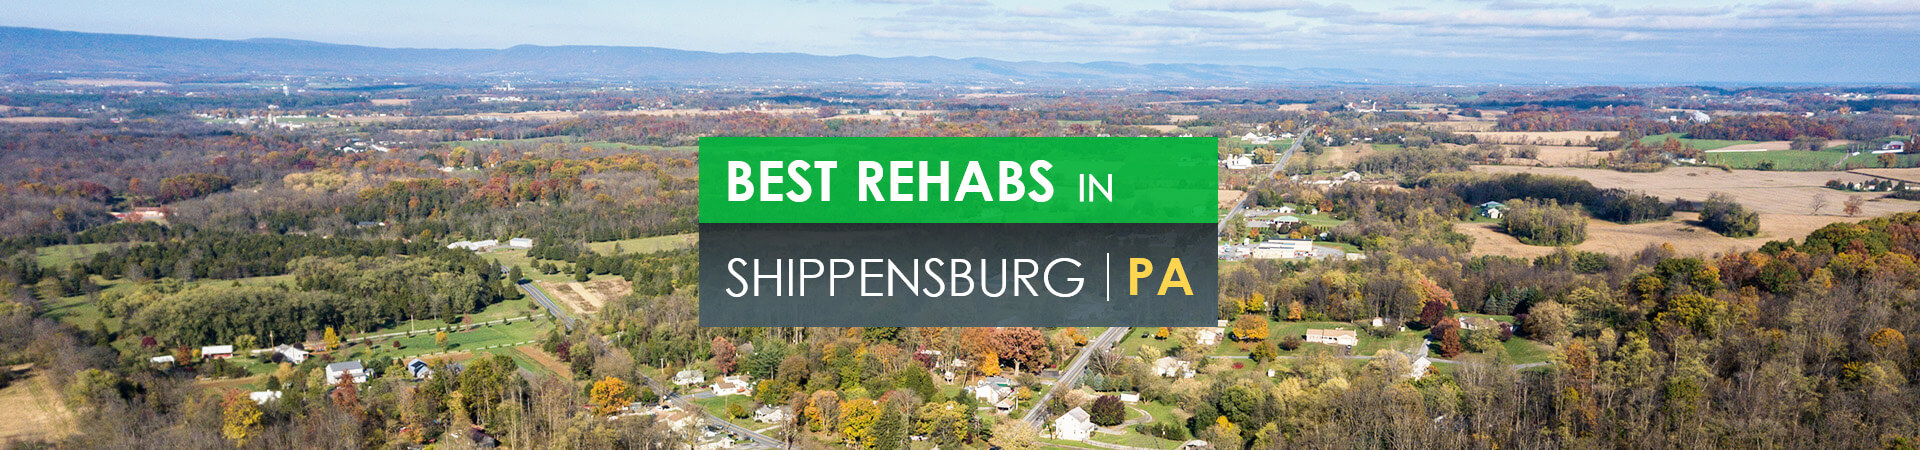 Best rehabs in Shippensburg, PA